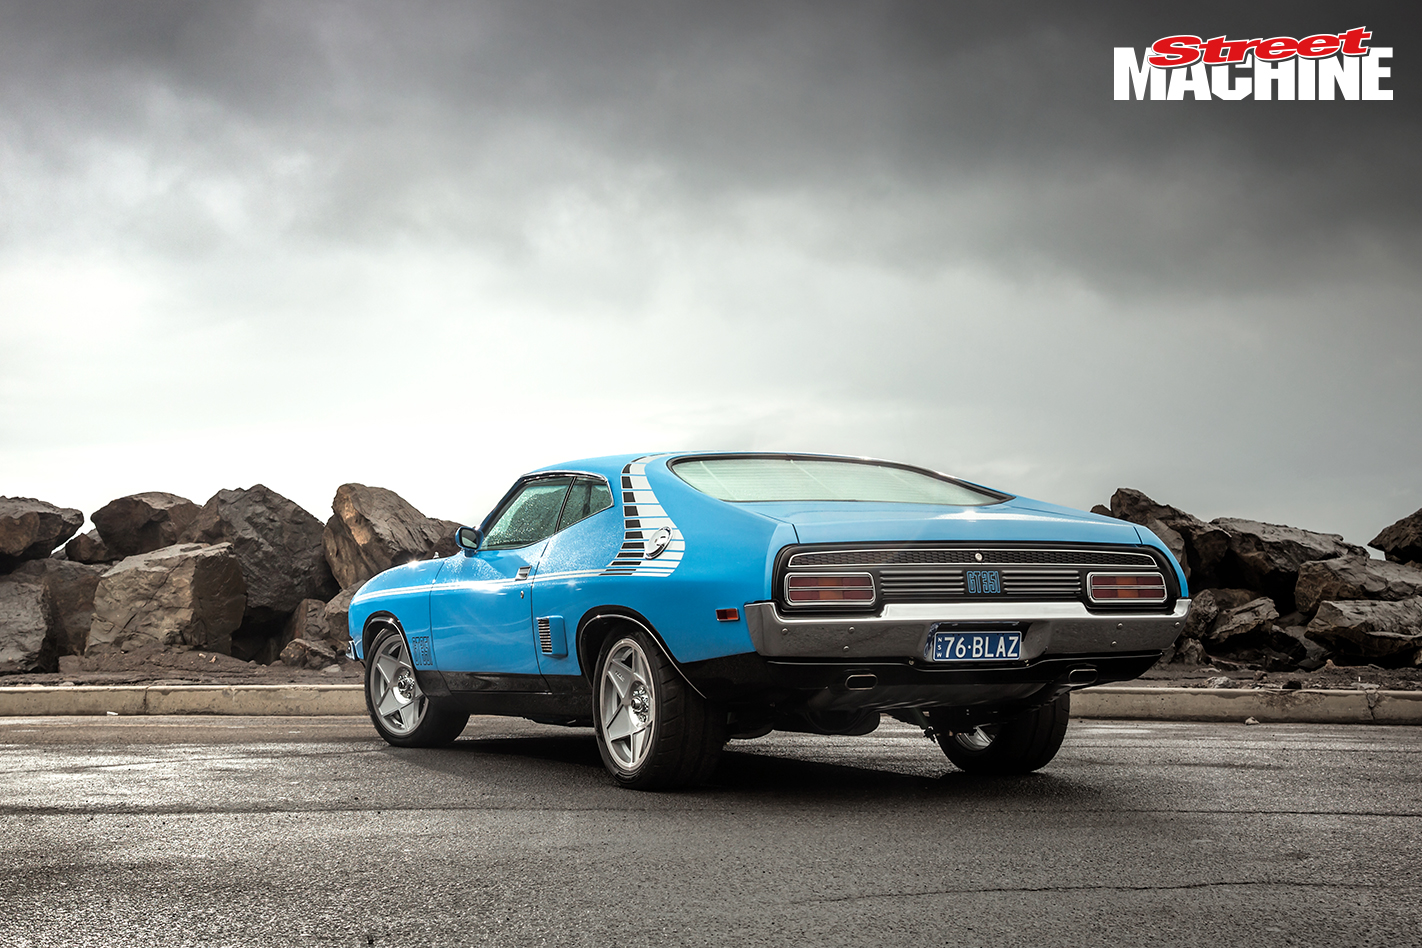 XB Falcon Coupe 351 13 Nw